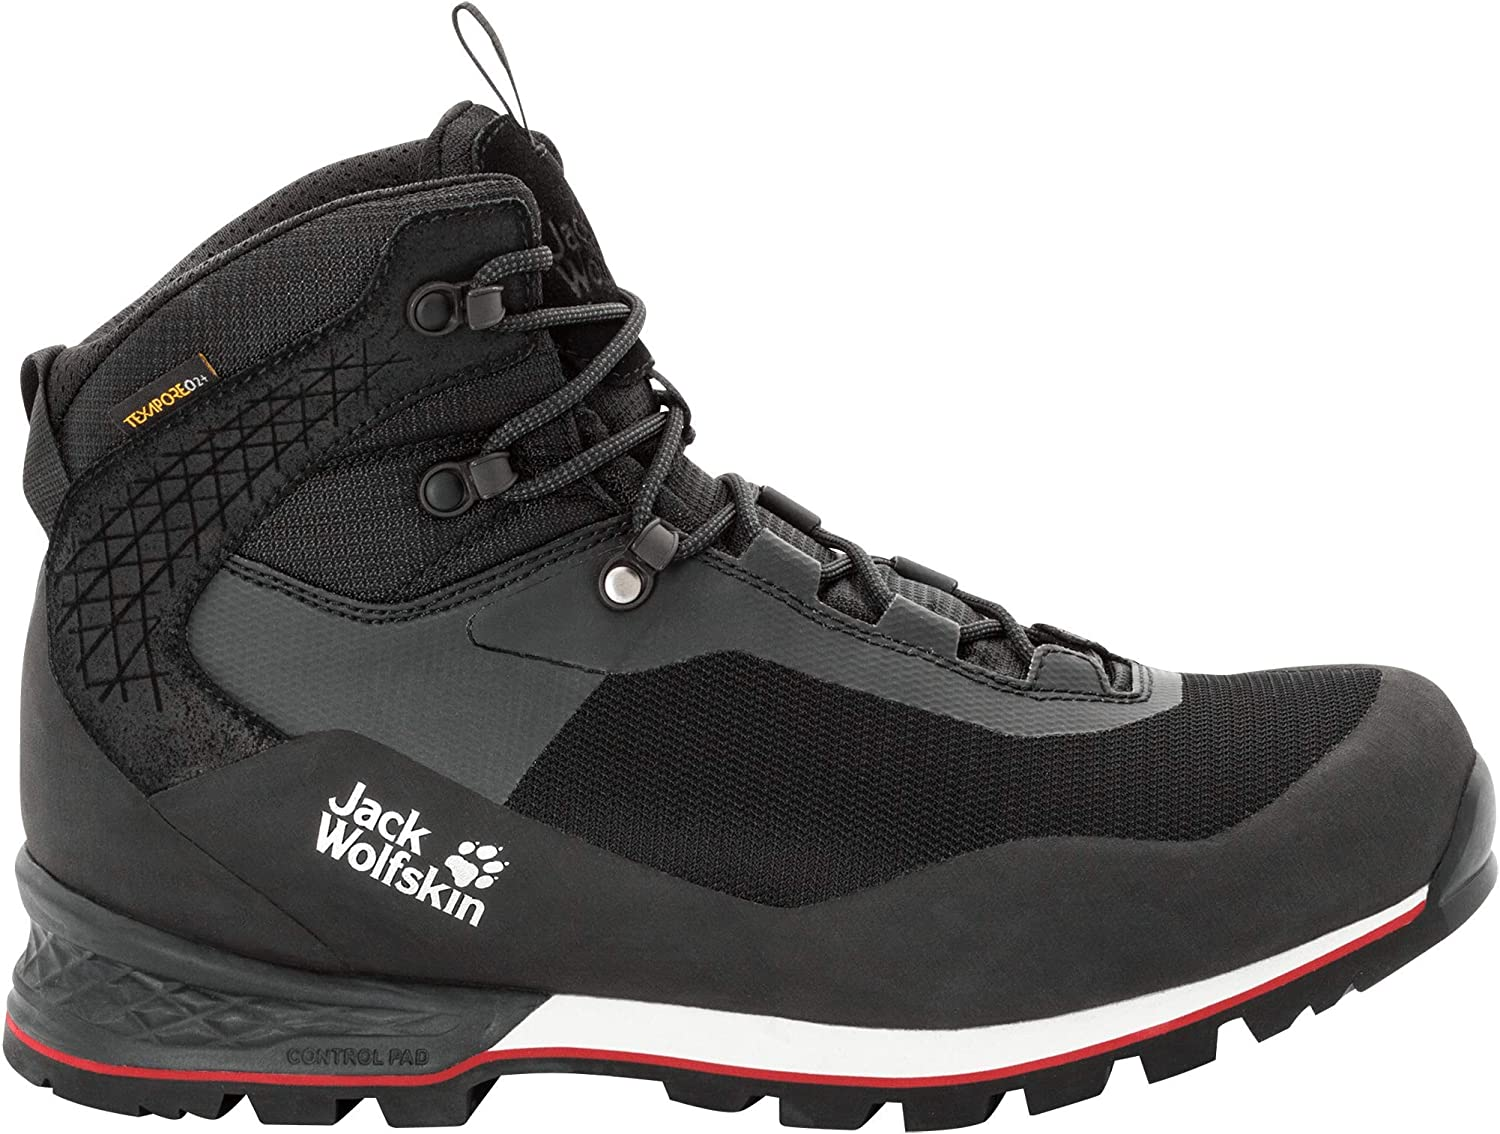 Jack Wolfskin Mens Wilderness Lite Texapore Mid Waterproof Hiking Boot